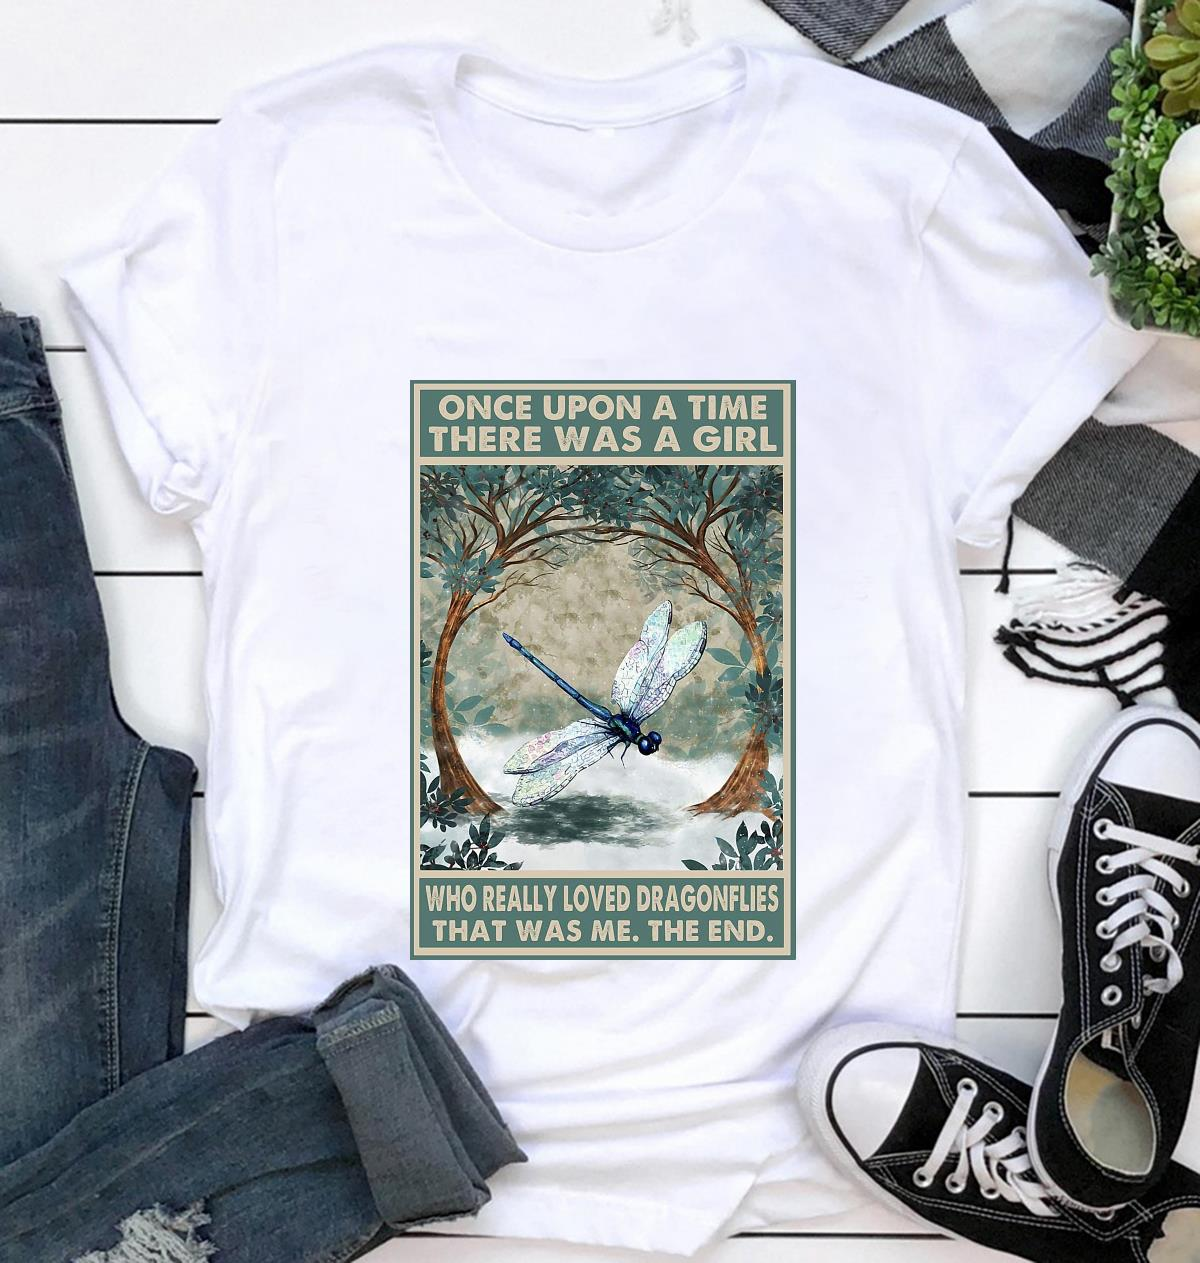 Once upon a time a girl who really loved dragonflies poster t-shirt